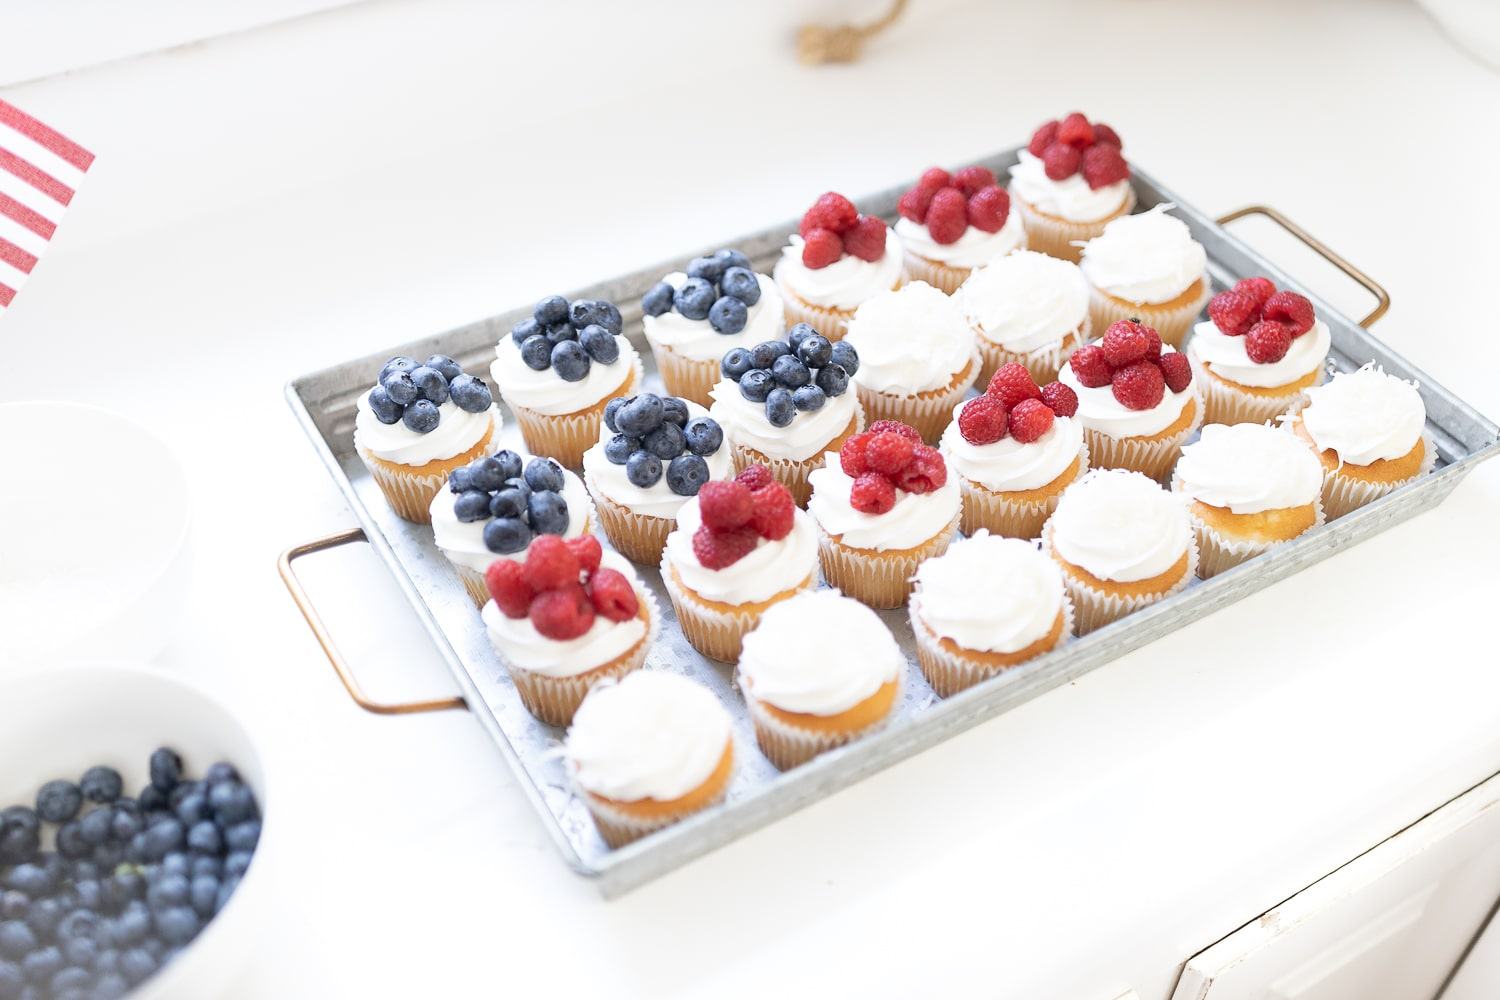 American flag dessert tray created with plain vanilla cupcakes and red, white, and blue fruit by entertaining blogger Stephanie Ziajka on Diary of a Debutante